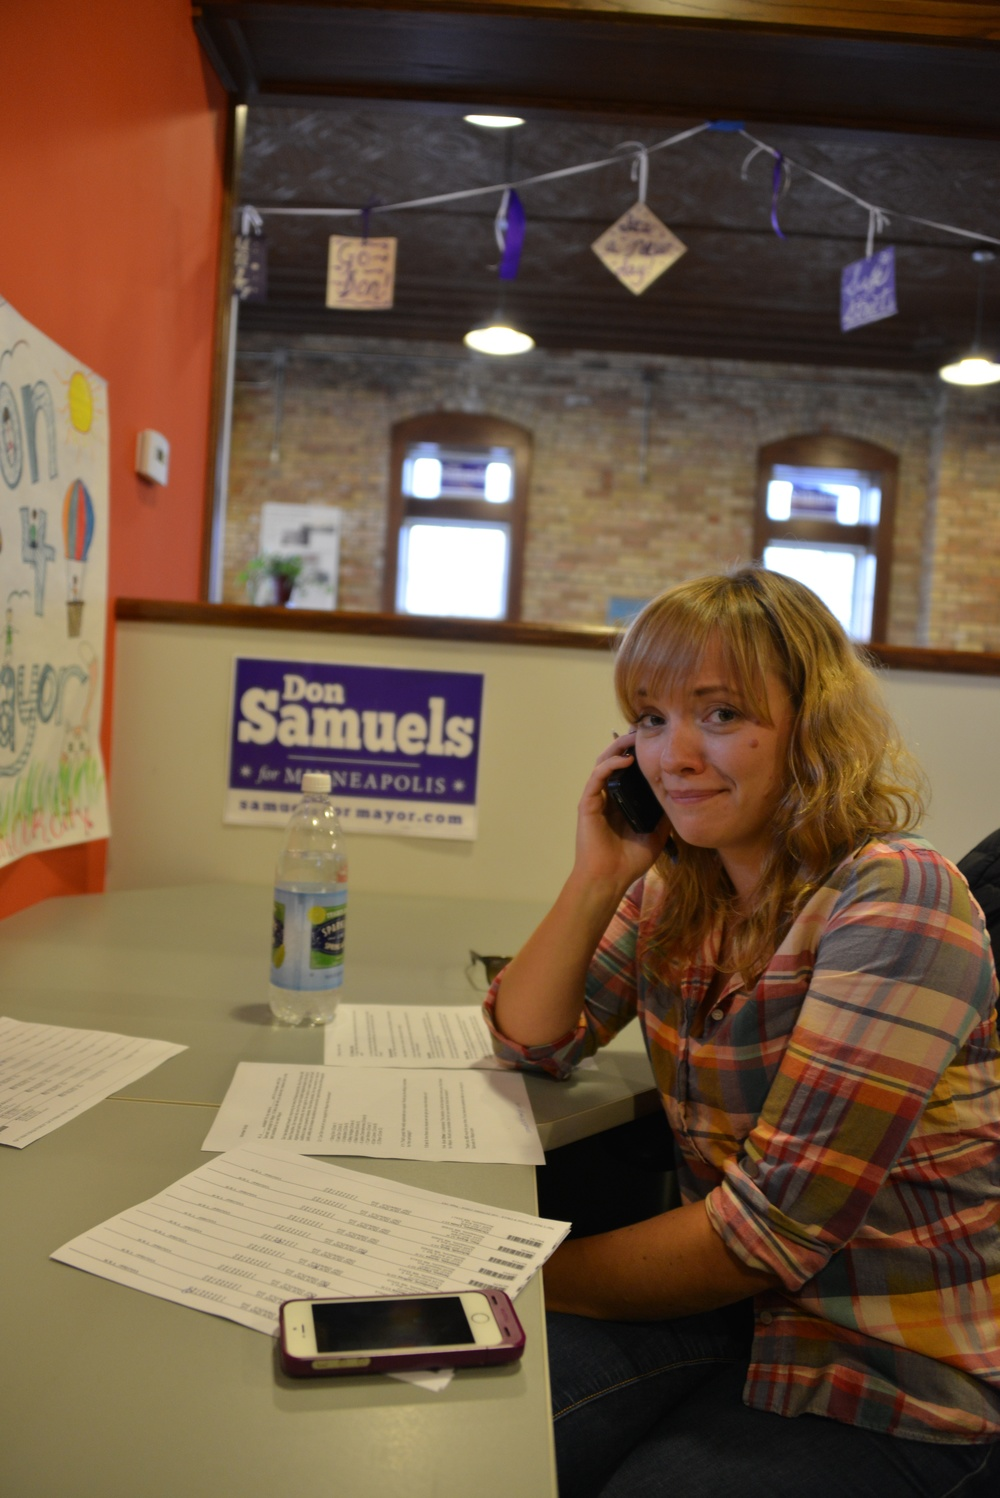 Hello ________! This is Molly and I am volunteering for the Don Samuels campaign for the mayor of Minneapolis. How are you today?